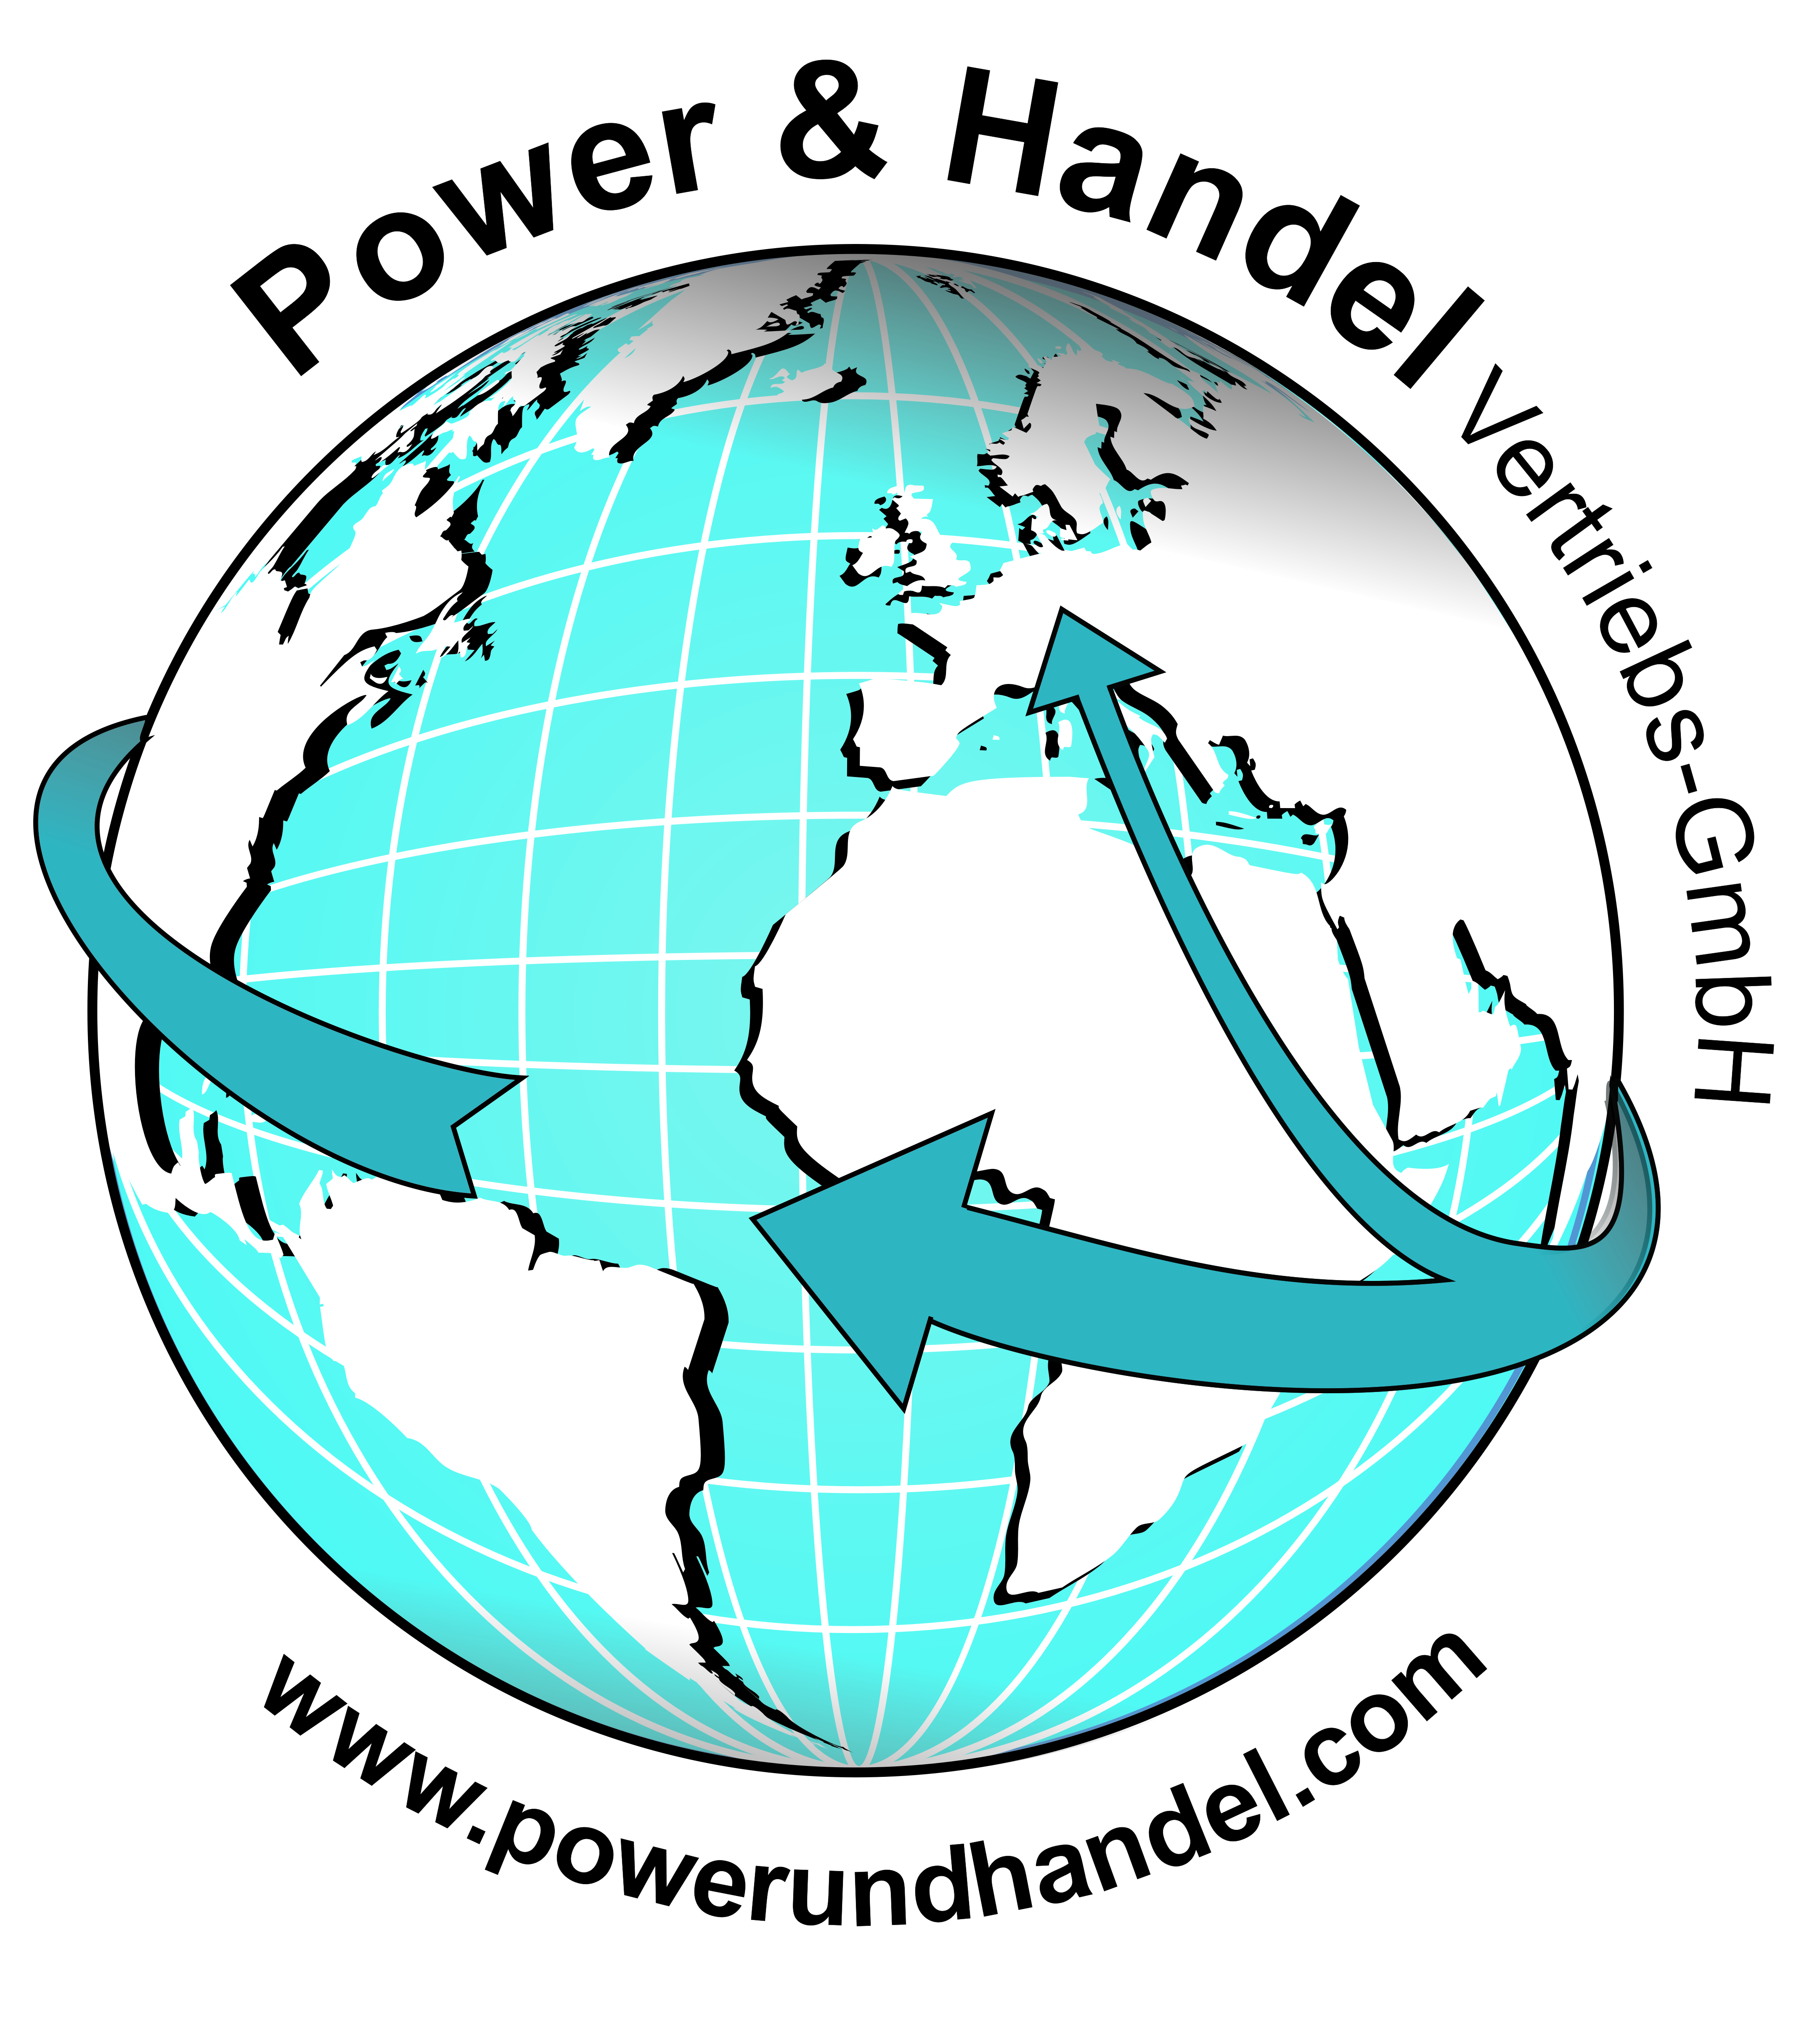 power handel logo.jpg